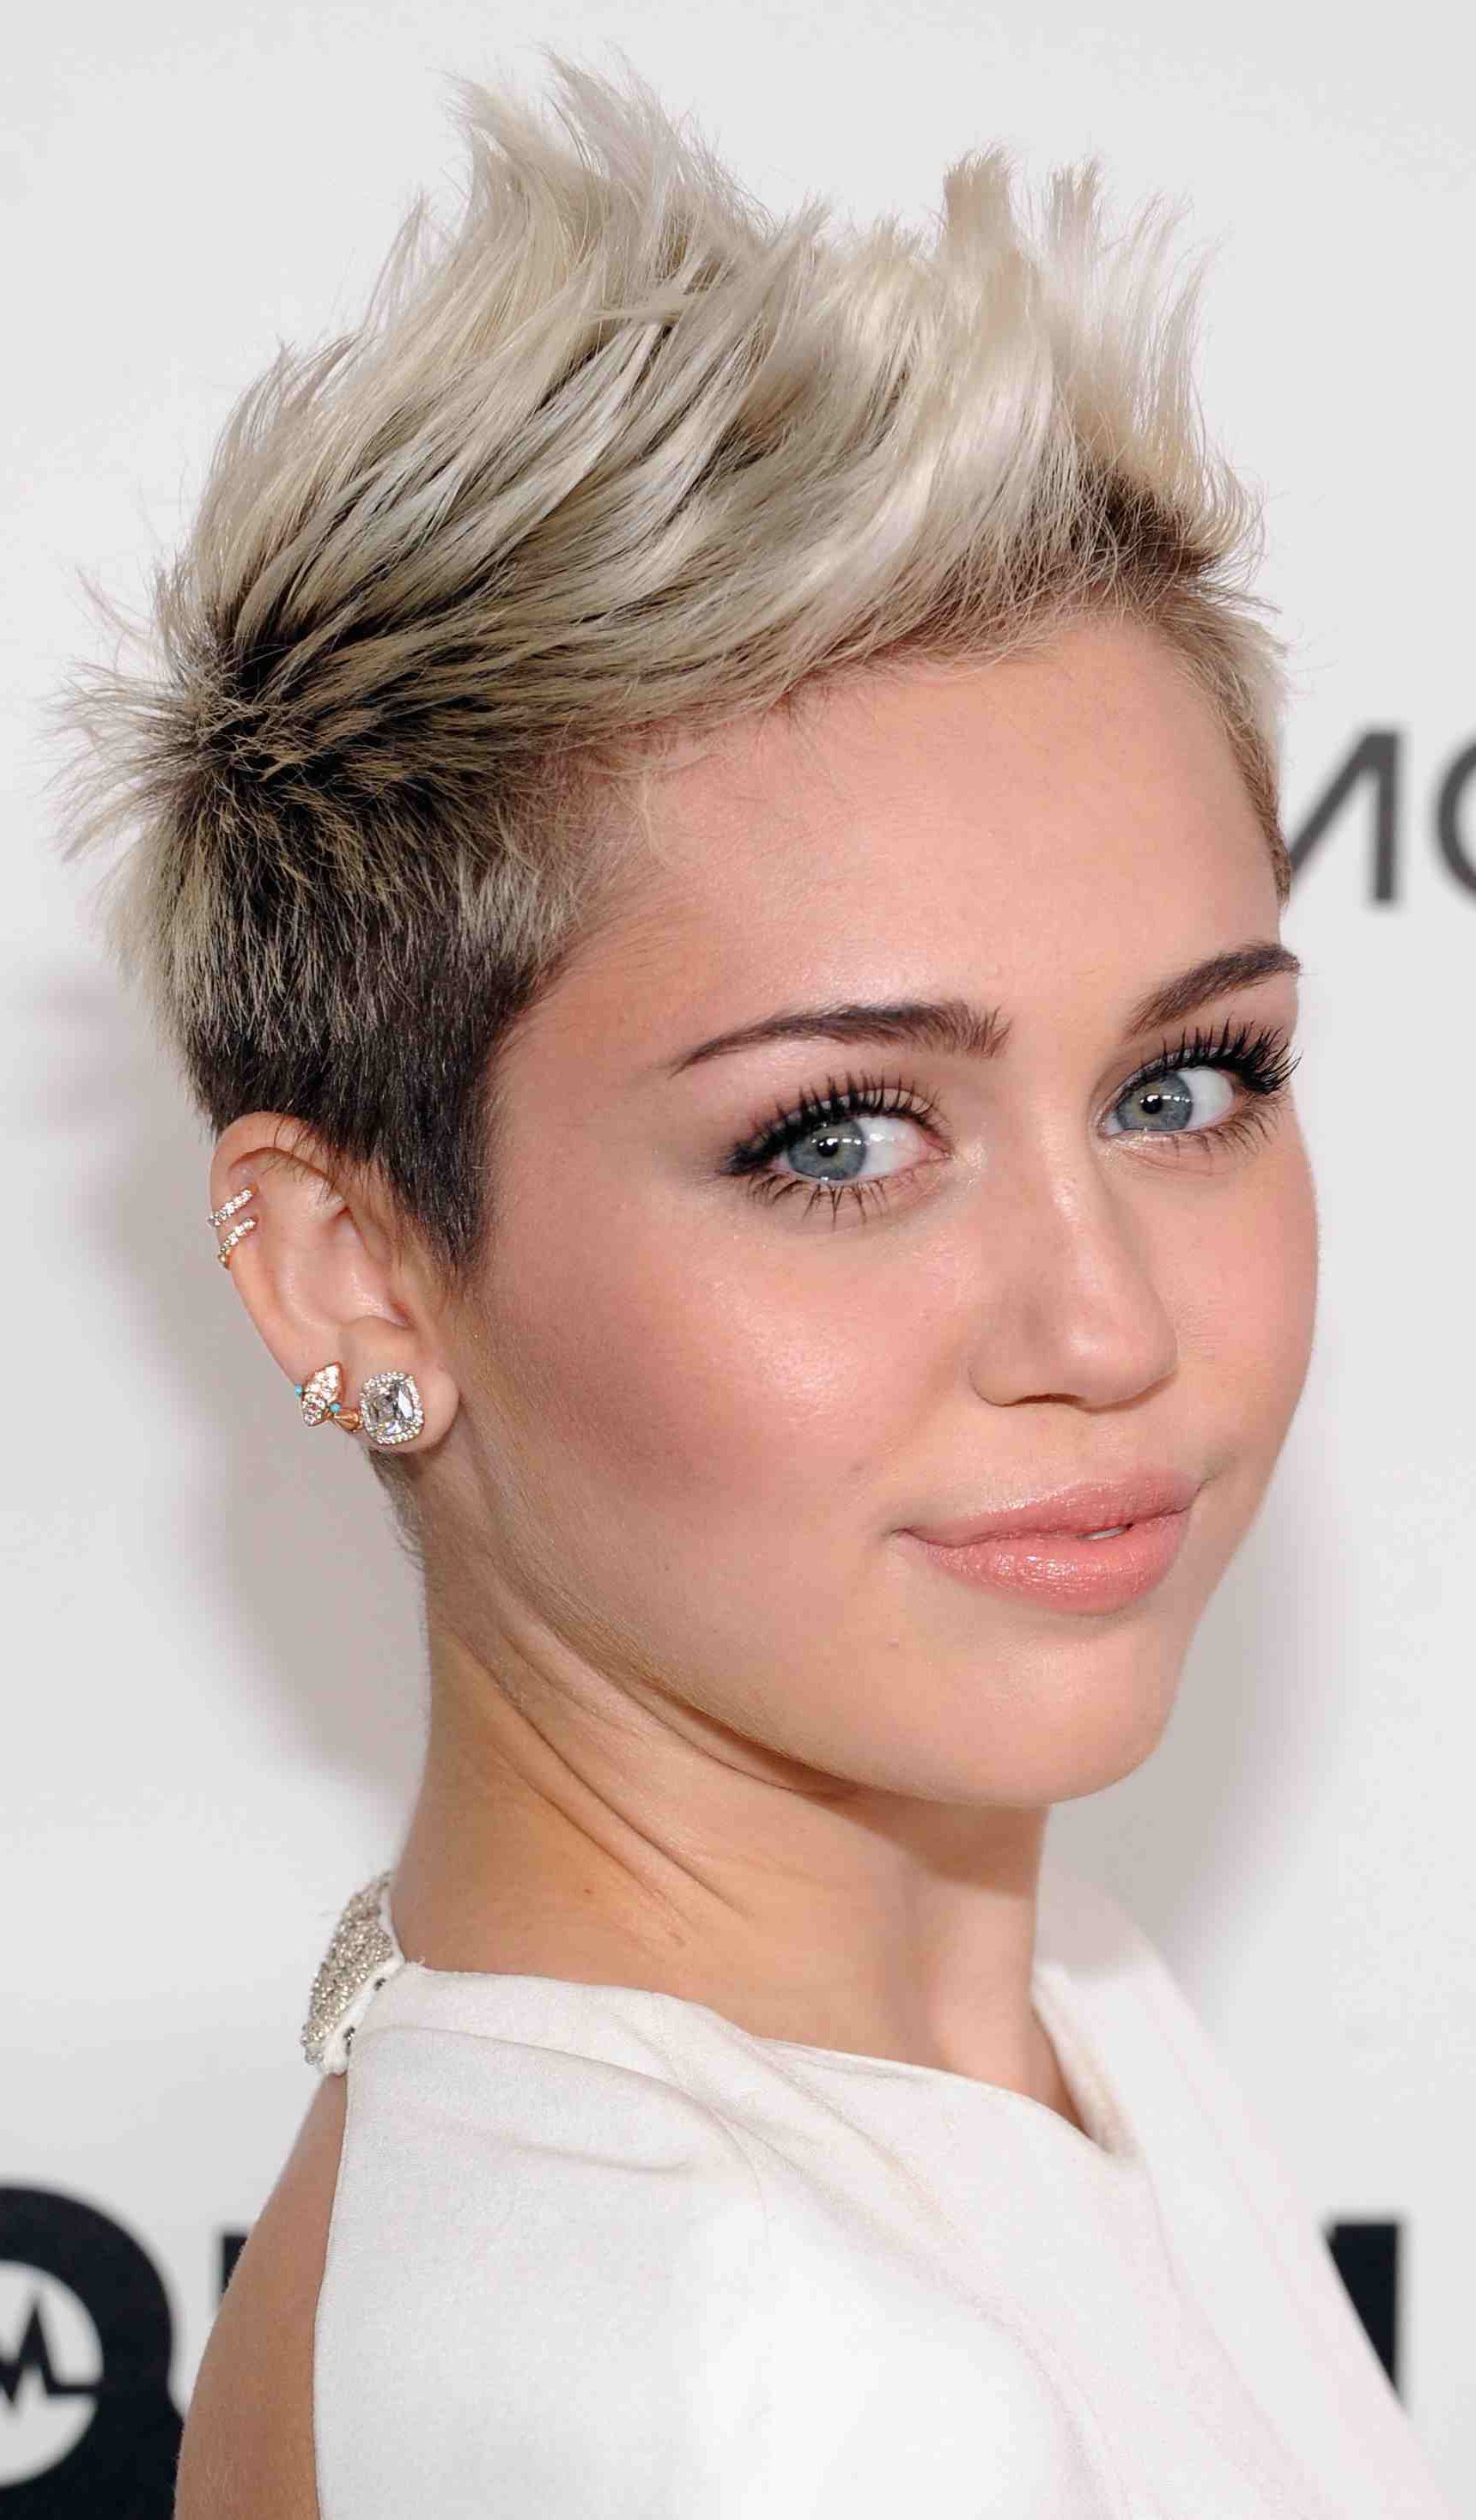 19 Hairstyles Women In Their 20S Can Get Away With Intended For 20S Short Hairstyles (View 2 of 25)